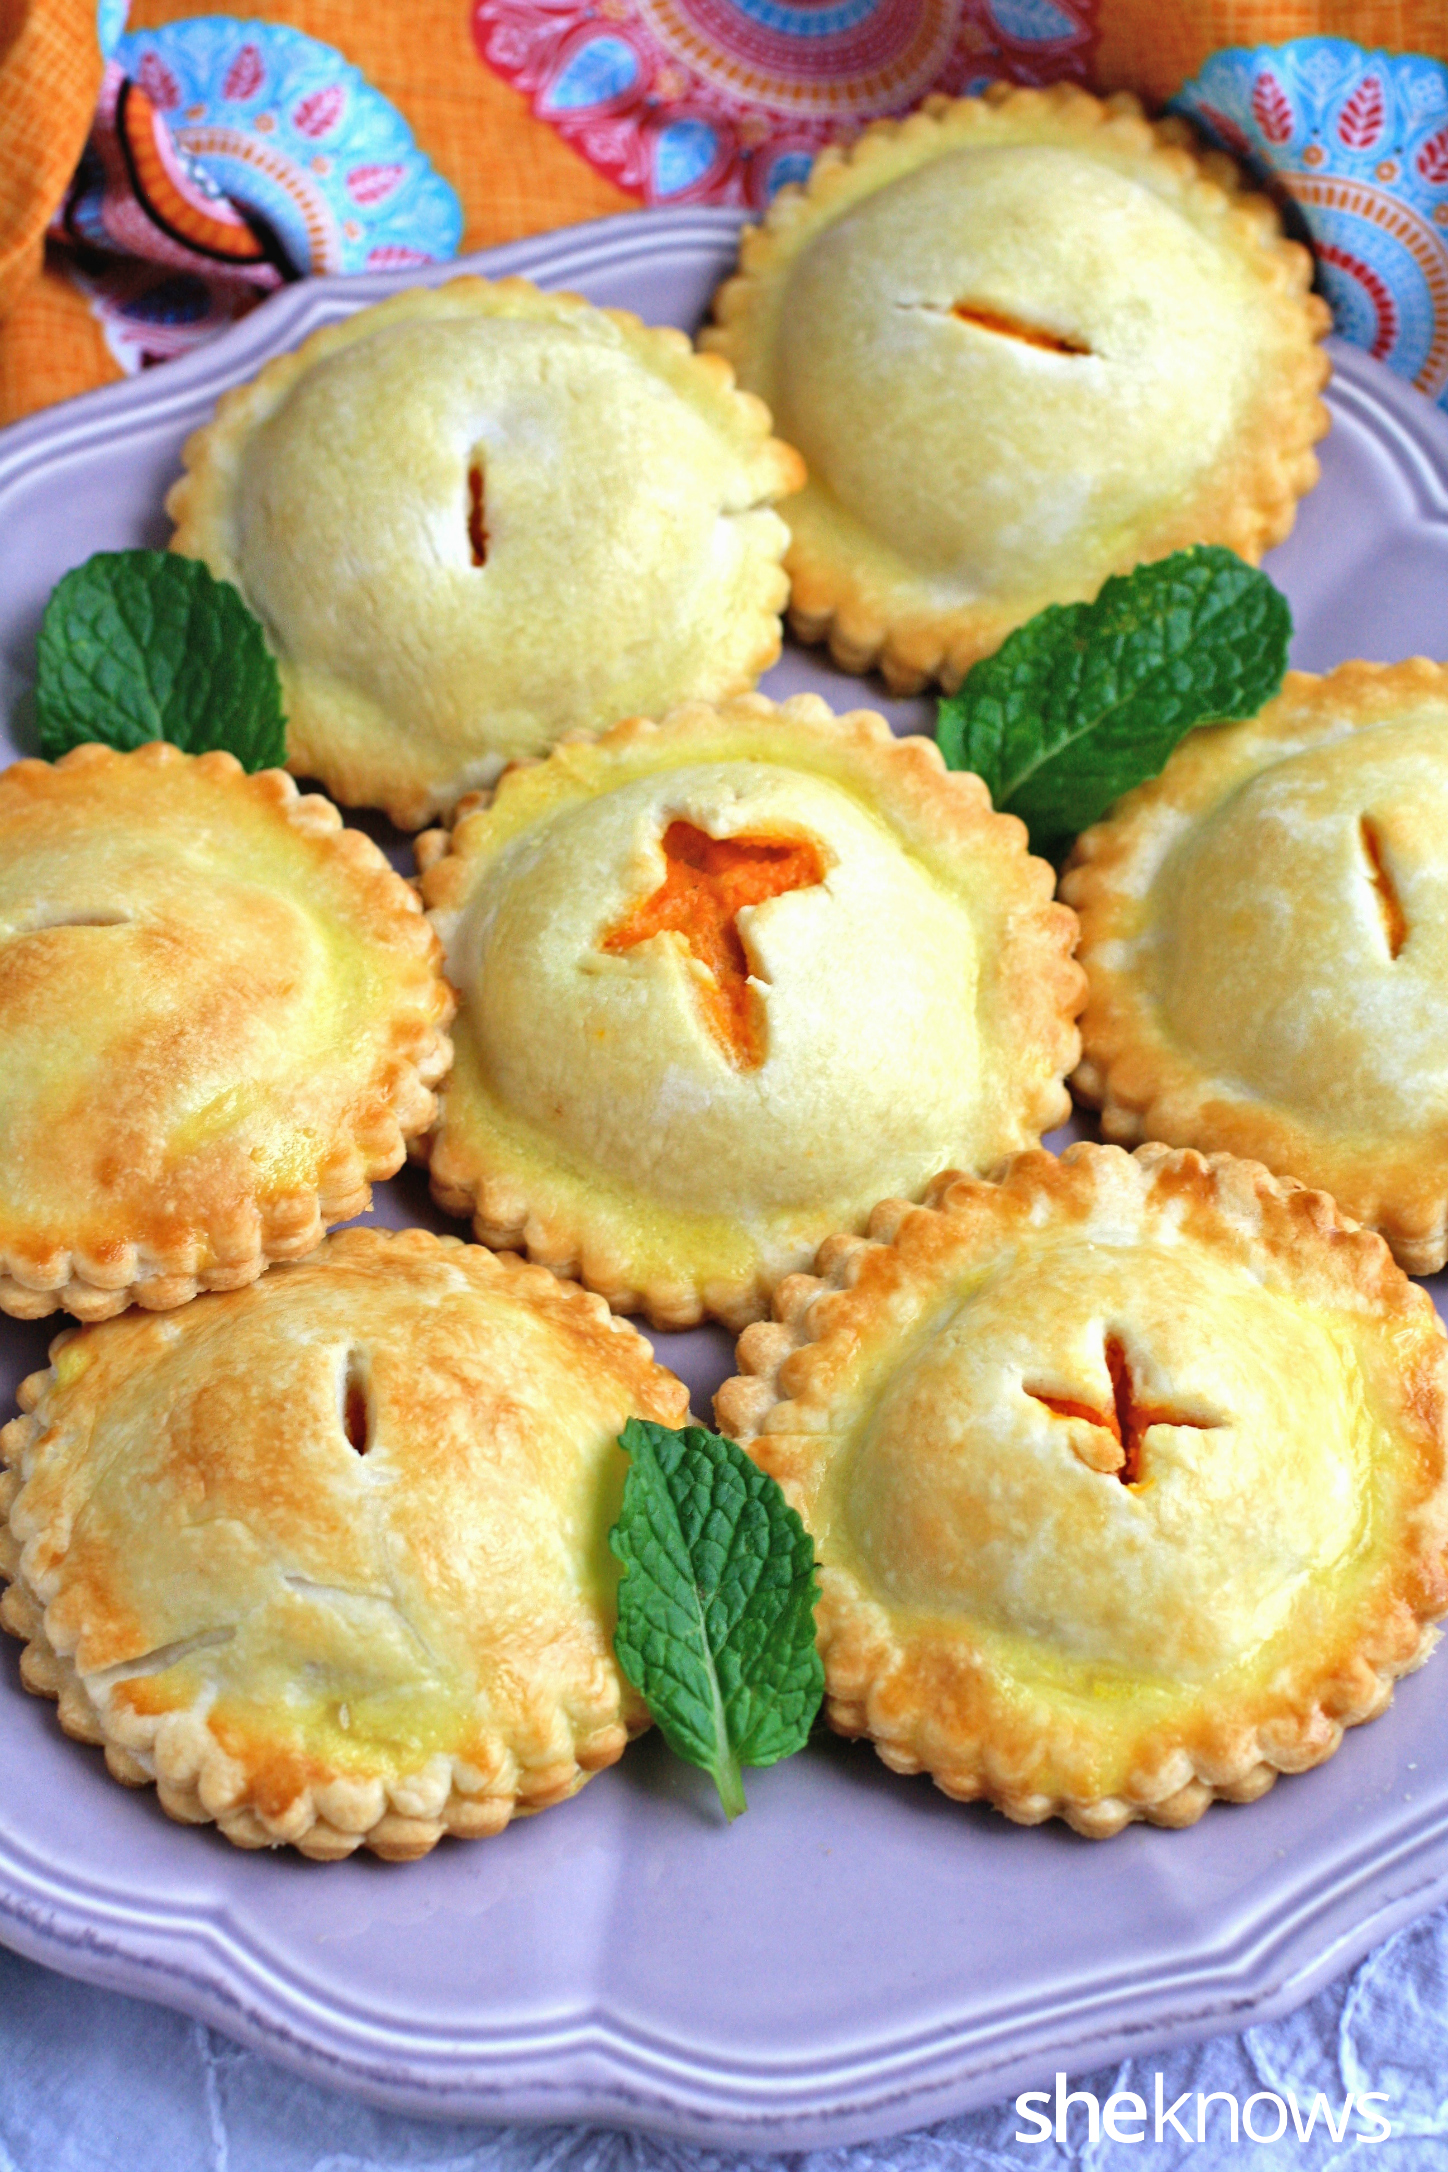 A plate of savory chickpea and sweet potato hand pies